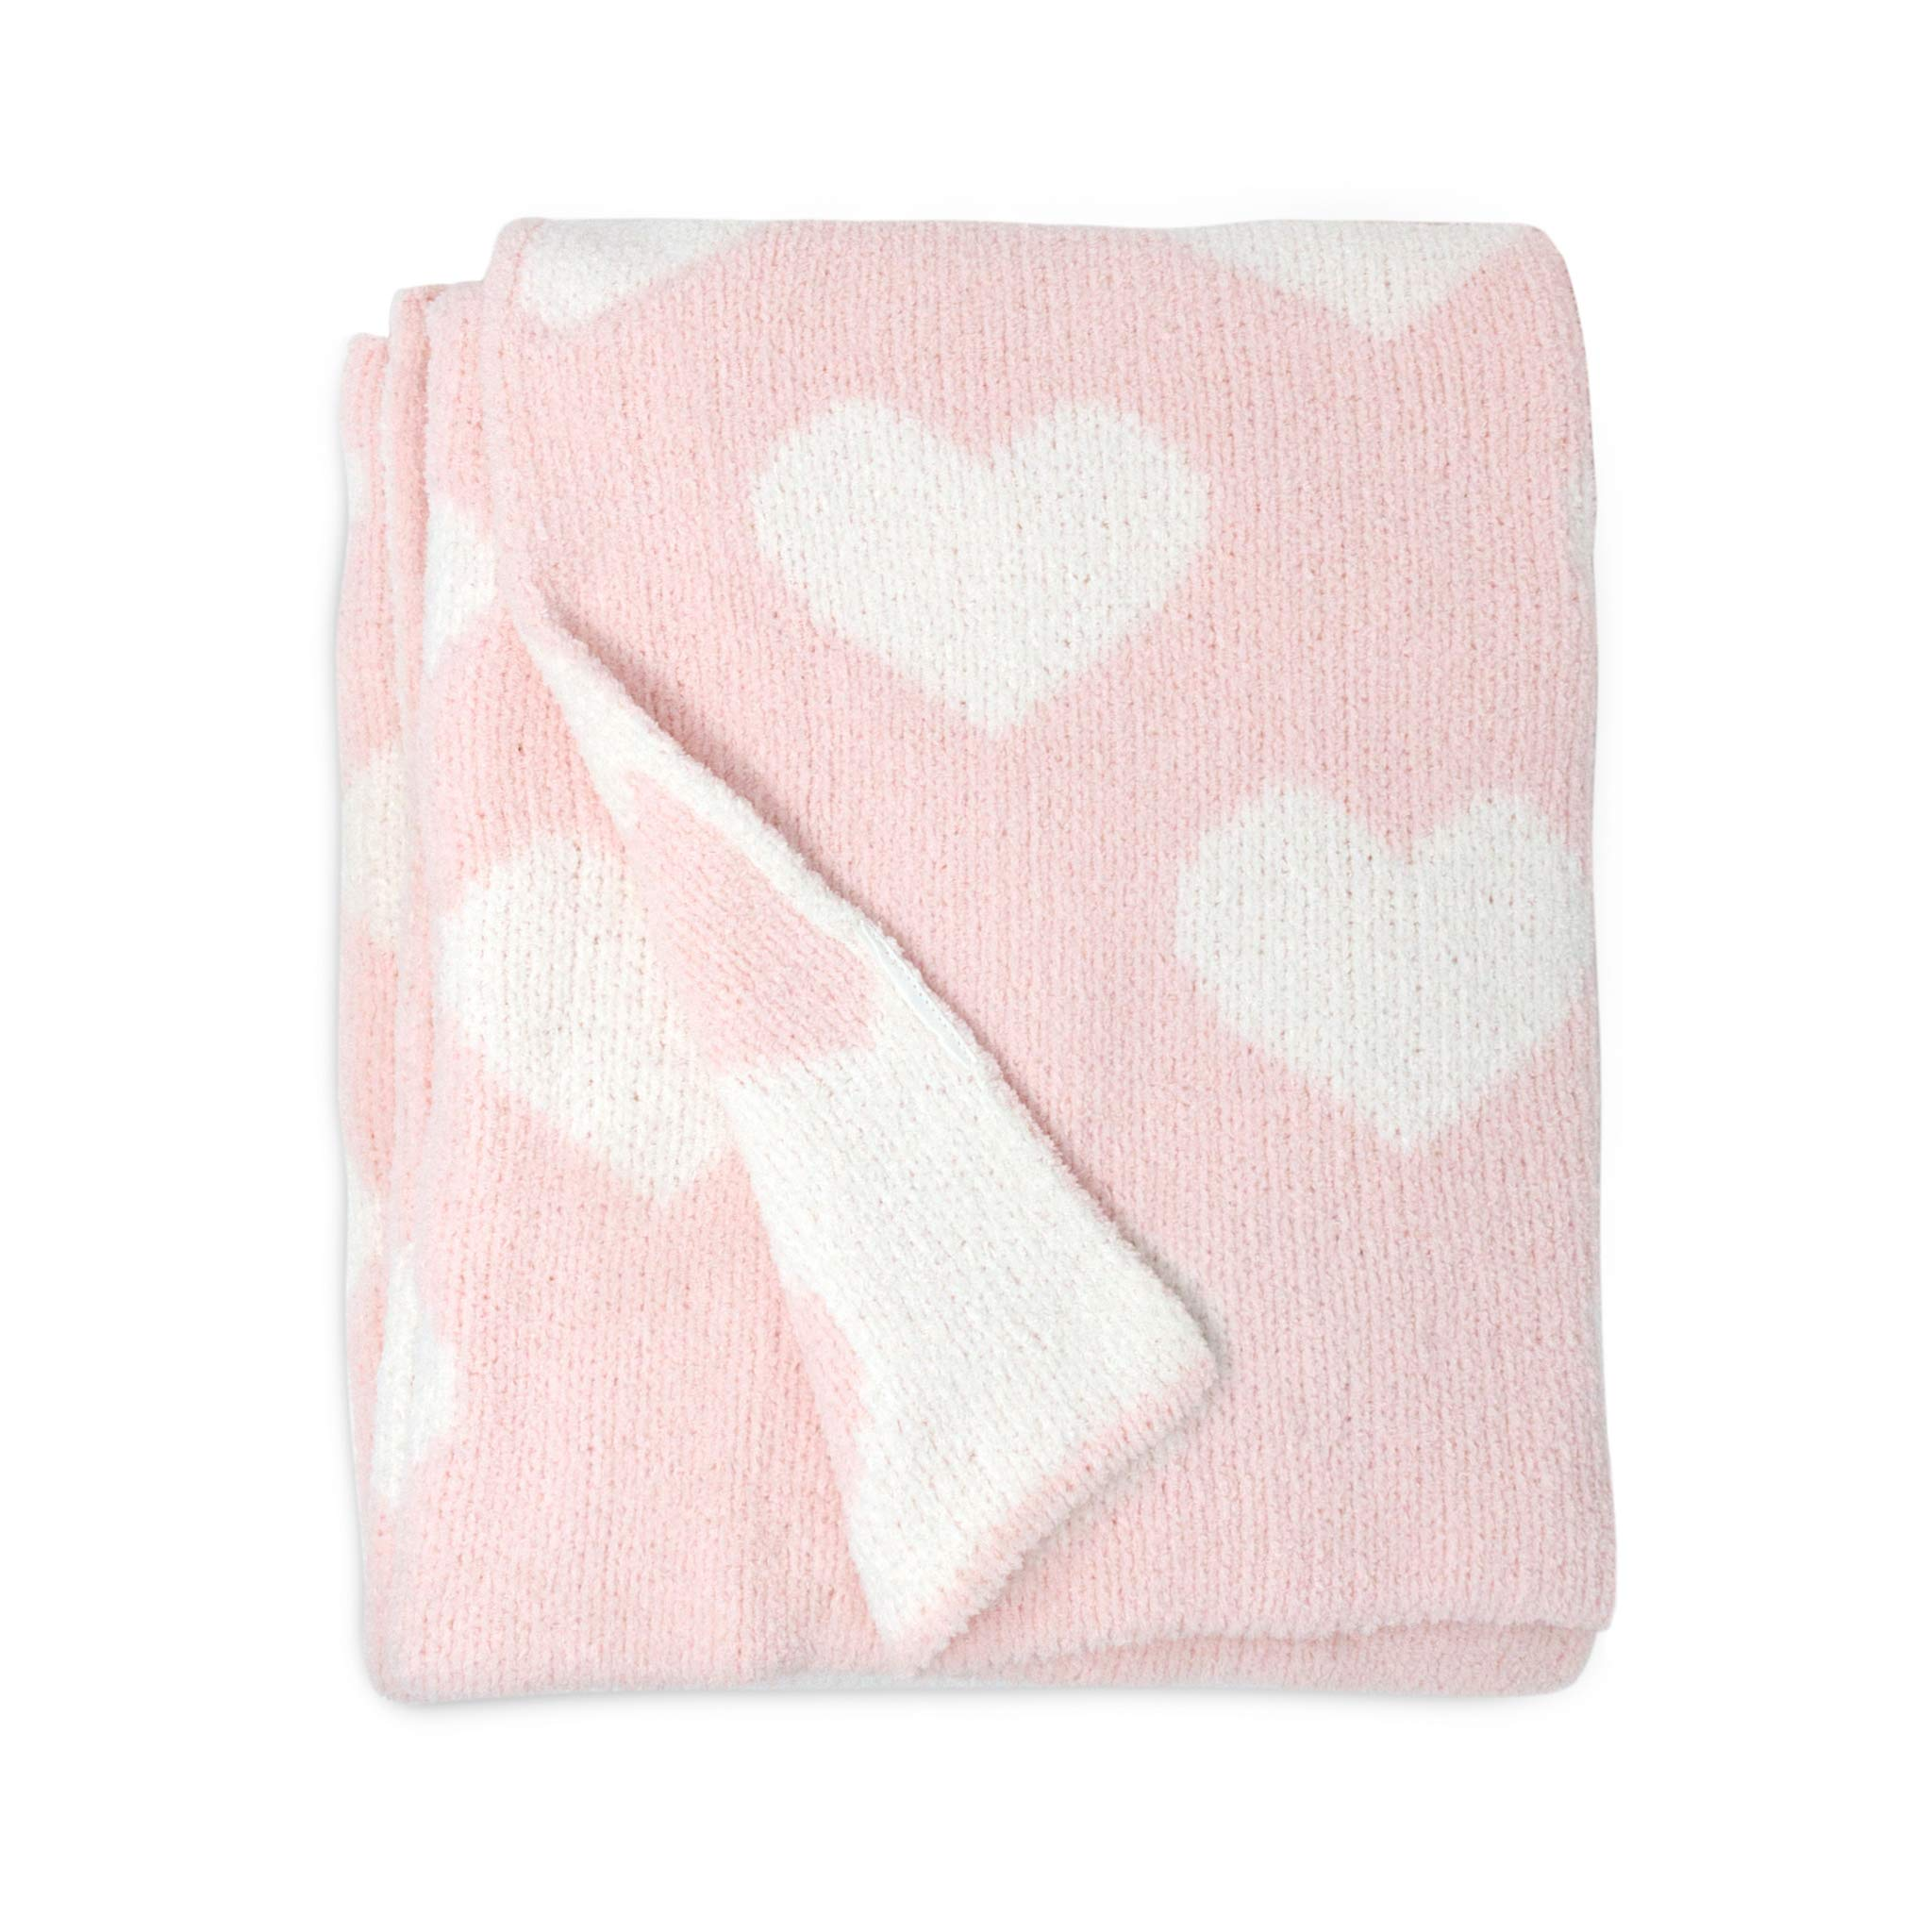 Living Textiles Pink Hearts Chenille Soft Baby Blanket Premium Cozy Fabric for Best Comfort - for Infant,Toddler,Newborn,Nursery,Girl,Throw,Crib,Stroller,Gift, Pink Hearts 40x30